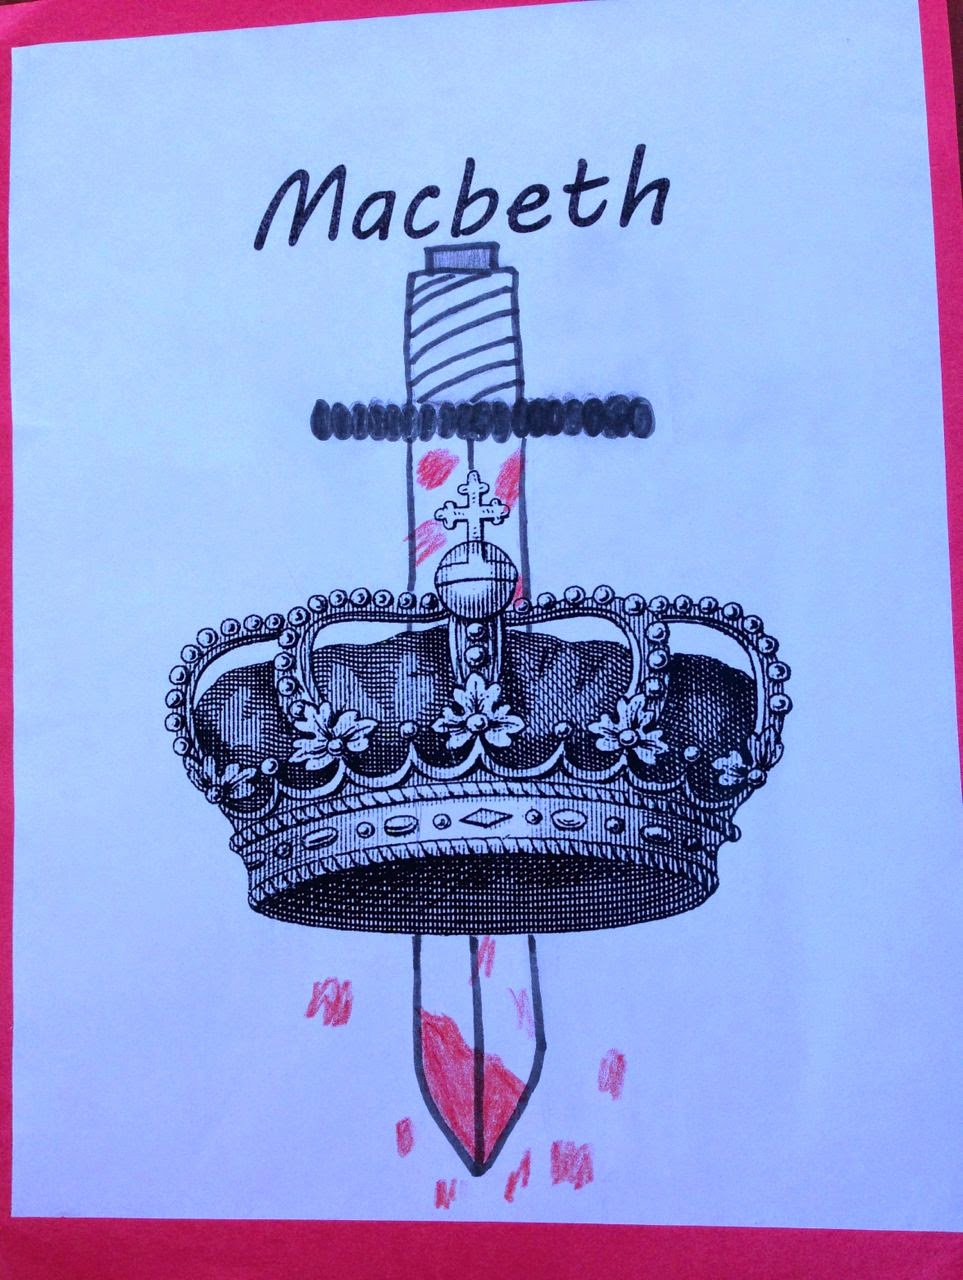 Book Cover Ideas Projects : Smallworld teaching macbeth book covers and poem activity